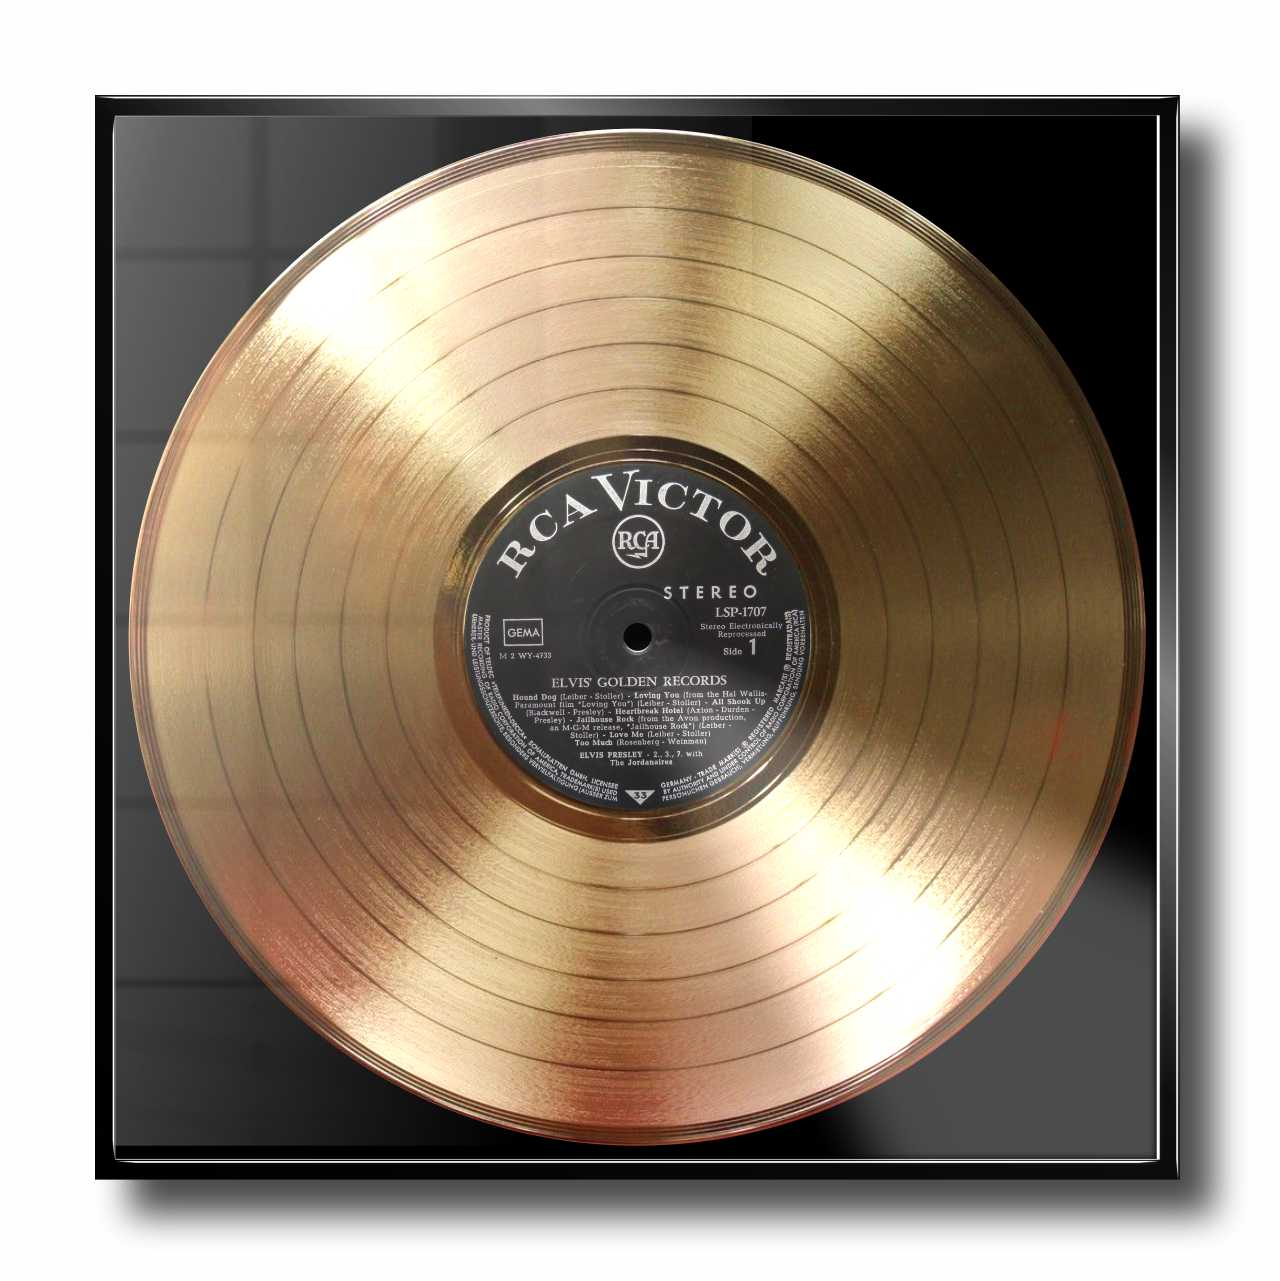 ELVIS PRESLEY - THE GOLDEN RECORDS: FRAMED GOLD PLATED VINYL RECORD